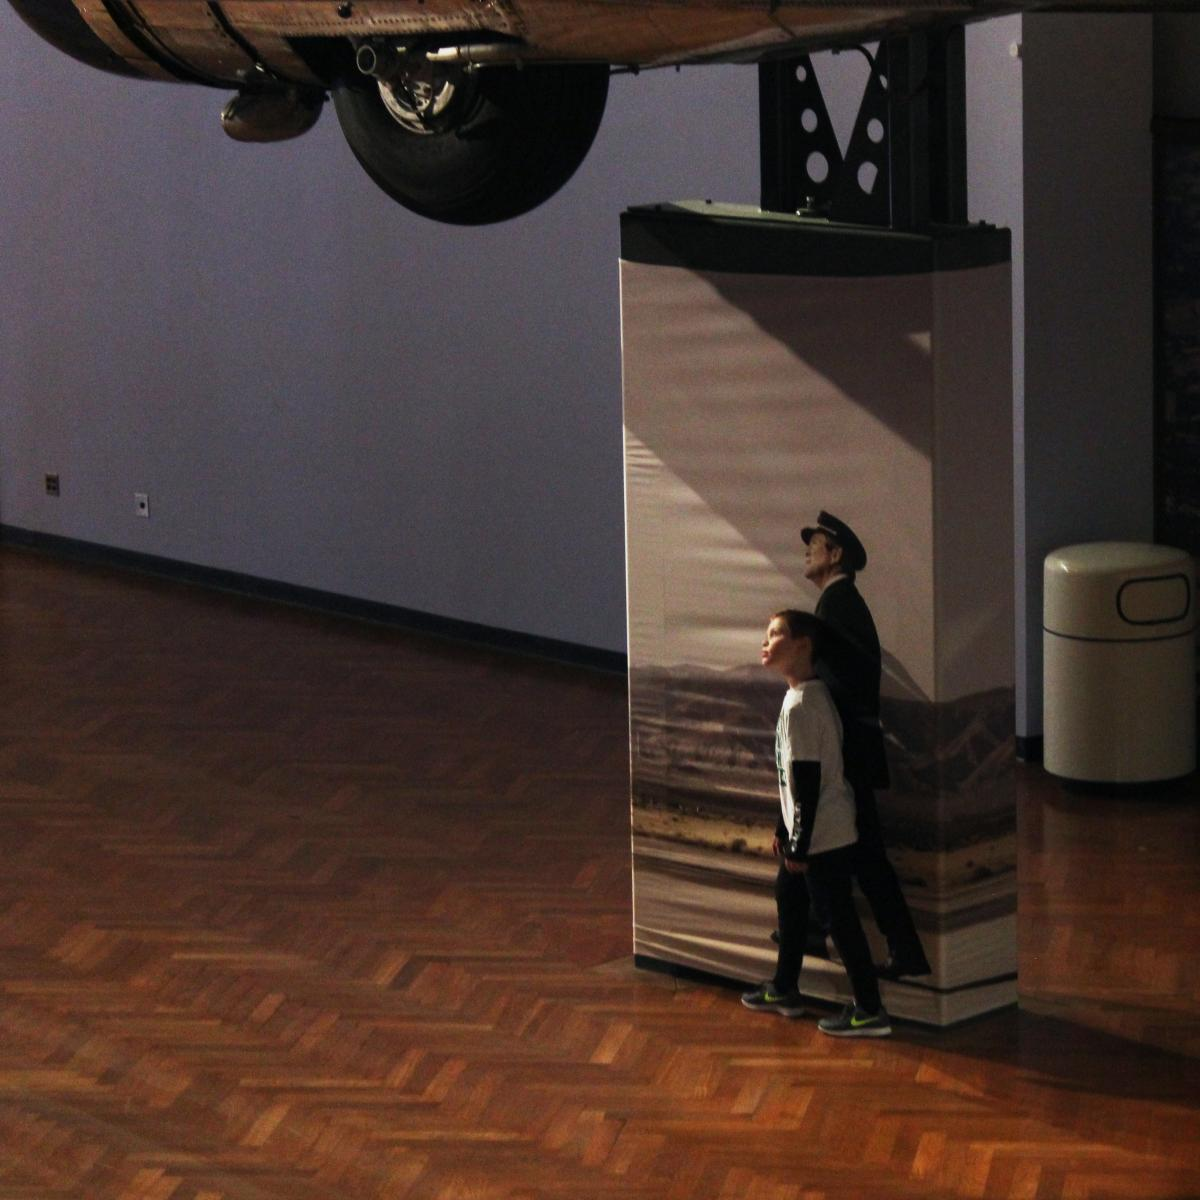 Photo of boy standing next to the image of a pilot as if he is part of the image underneath an airplane hanging at The Henry Ford museum in Dearborn, Michigan.